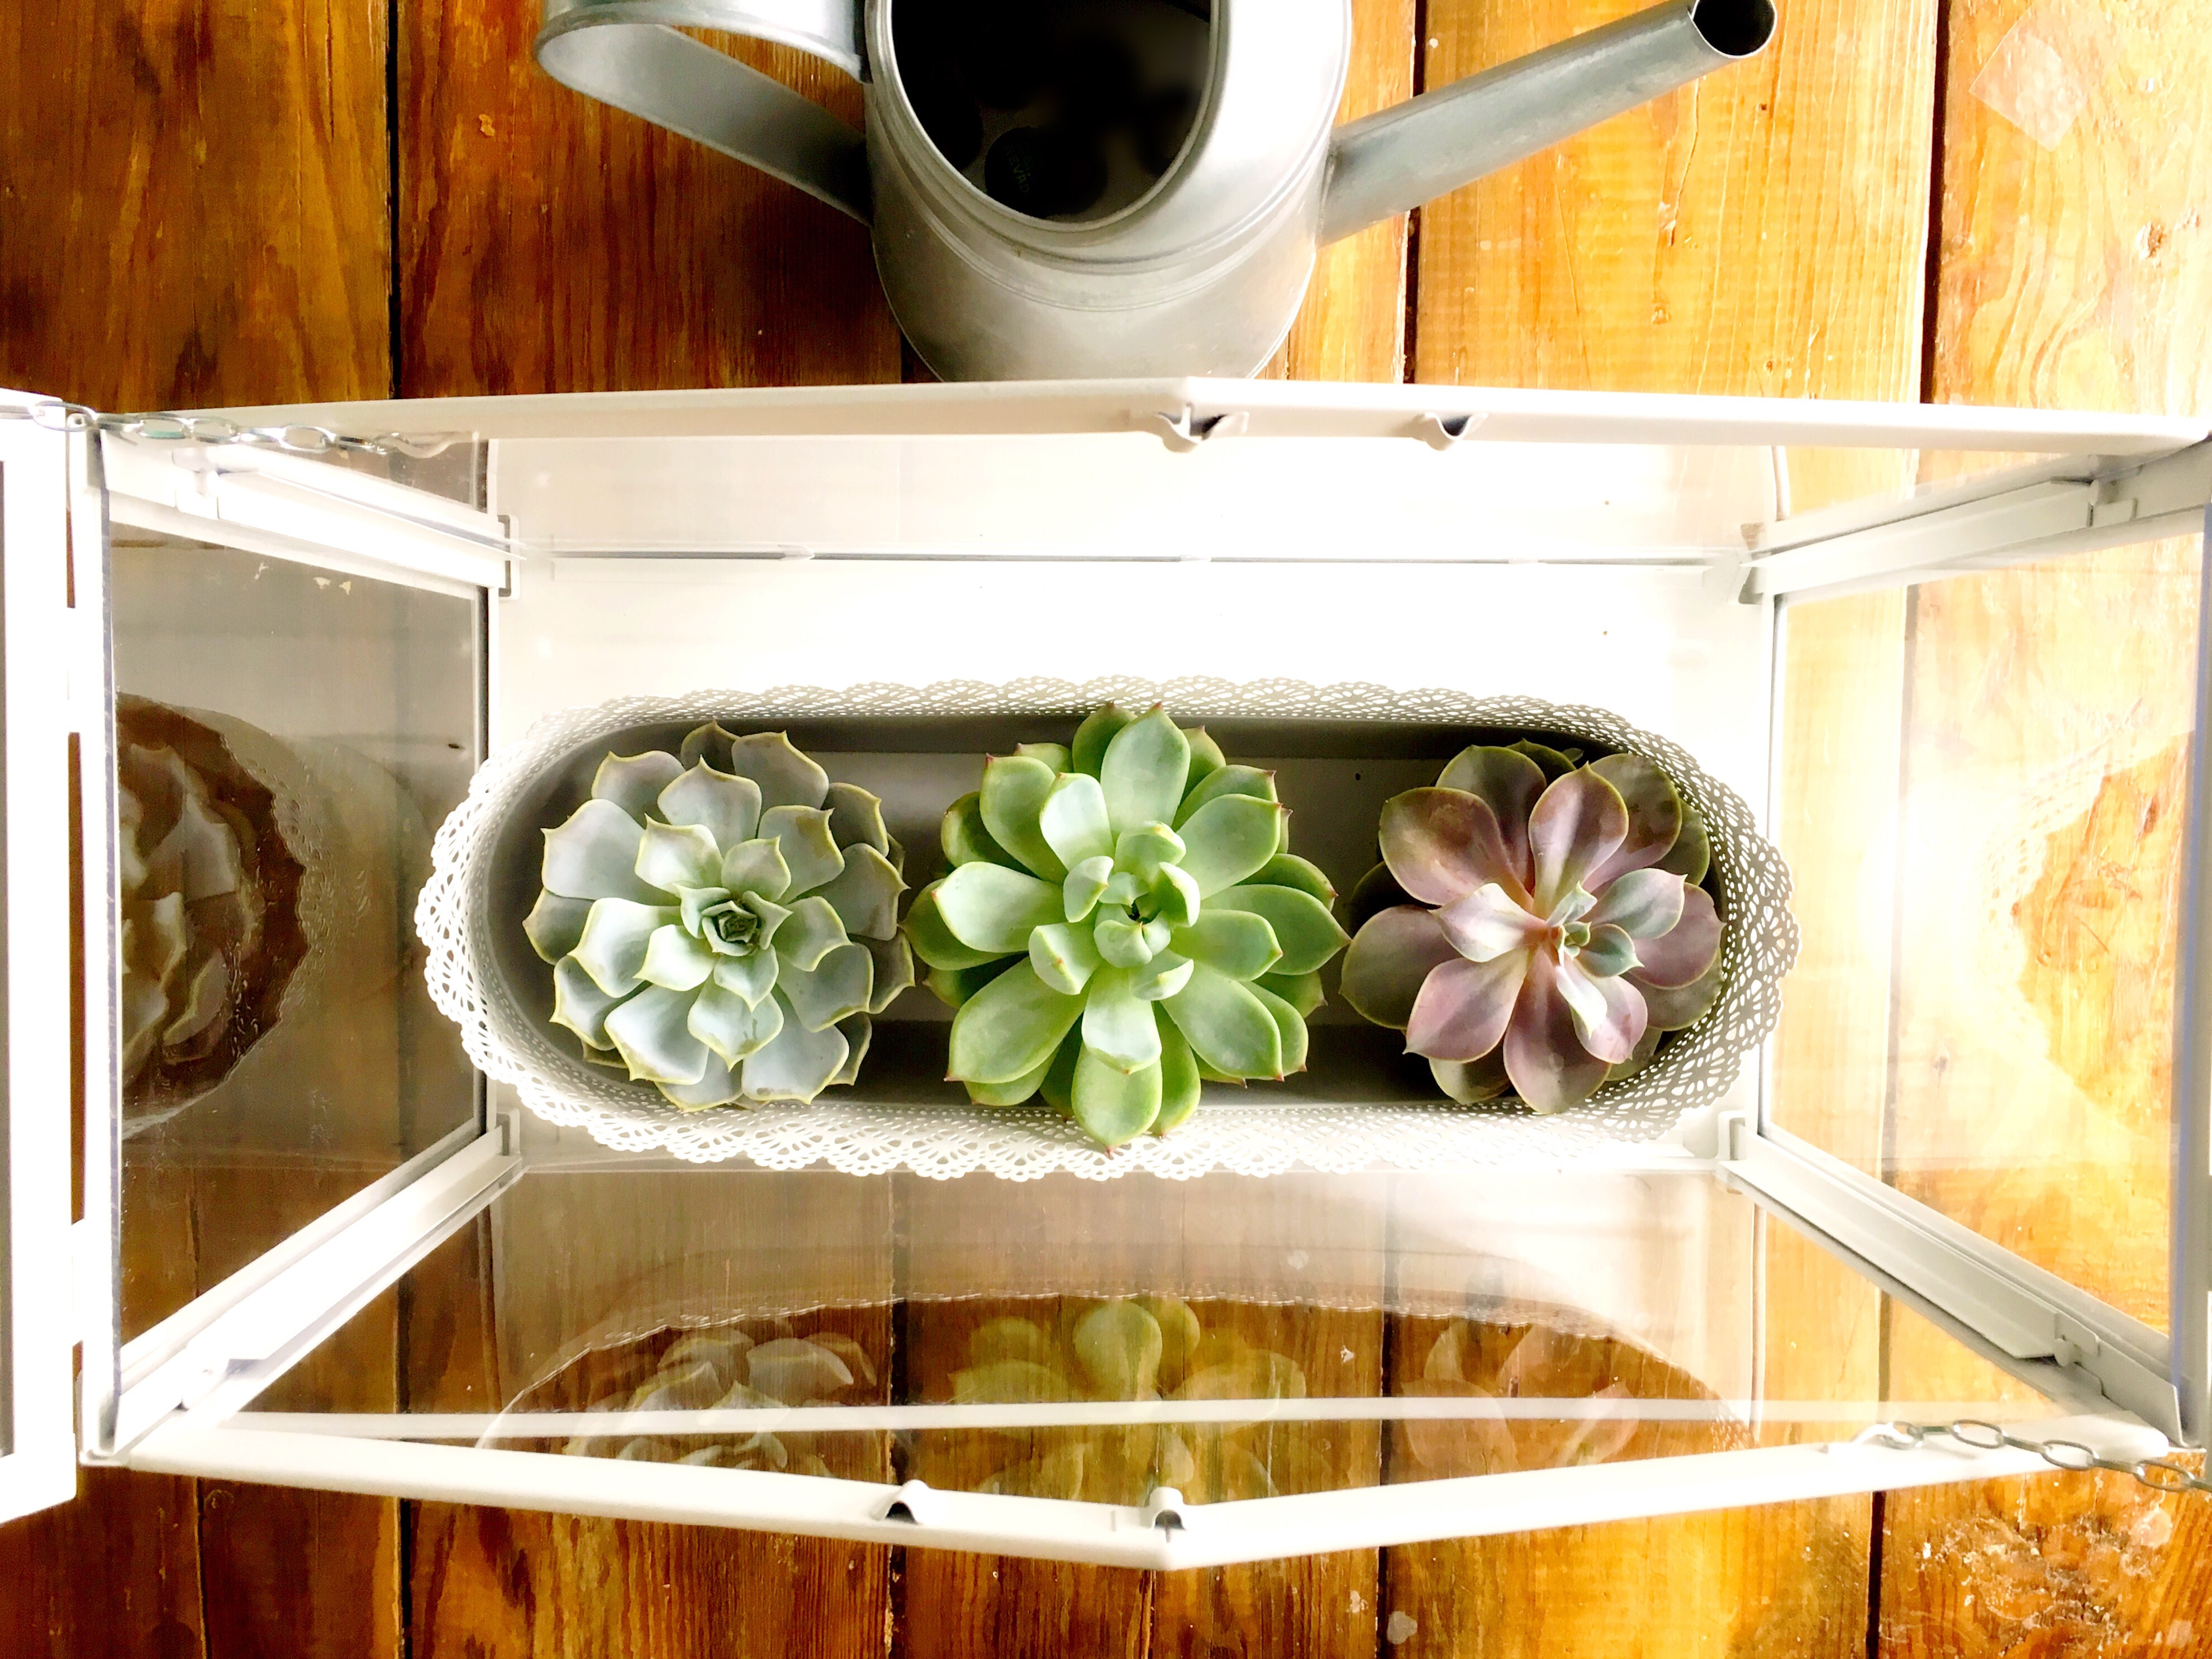 How To Water Your Succulents Without Killing Them: The Complete Guide